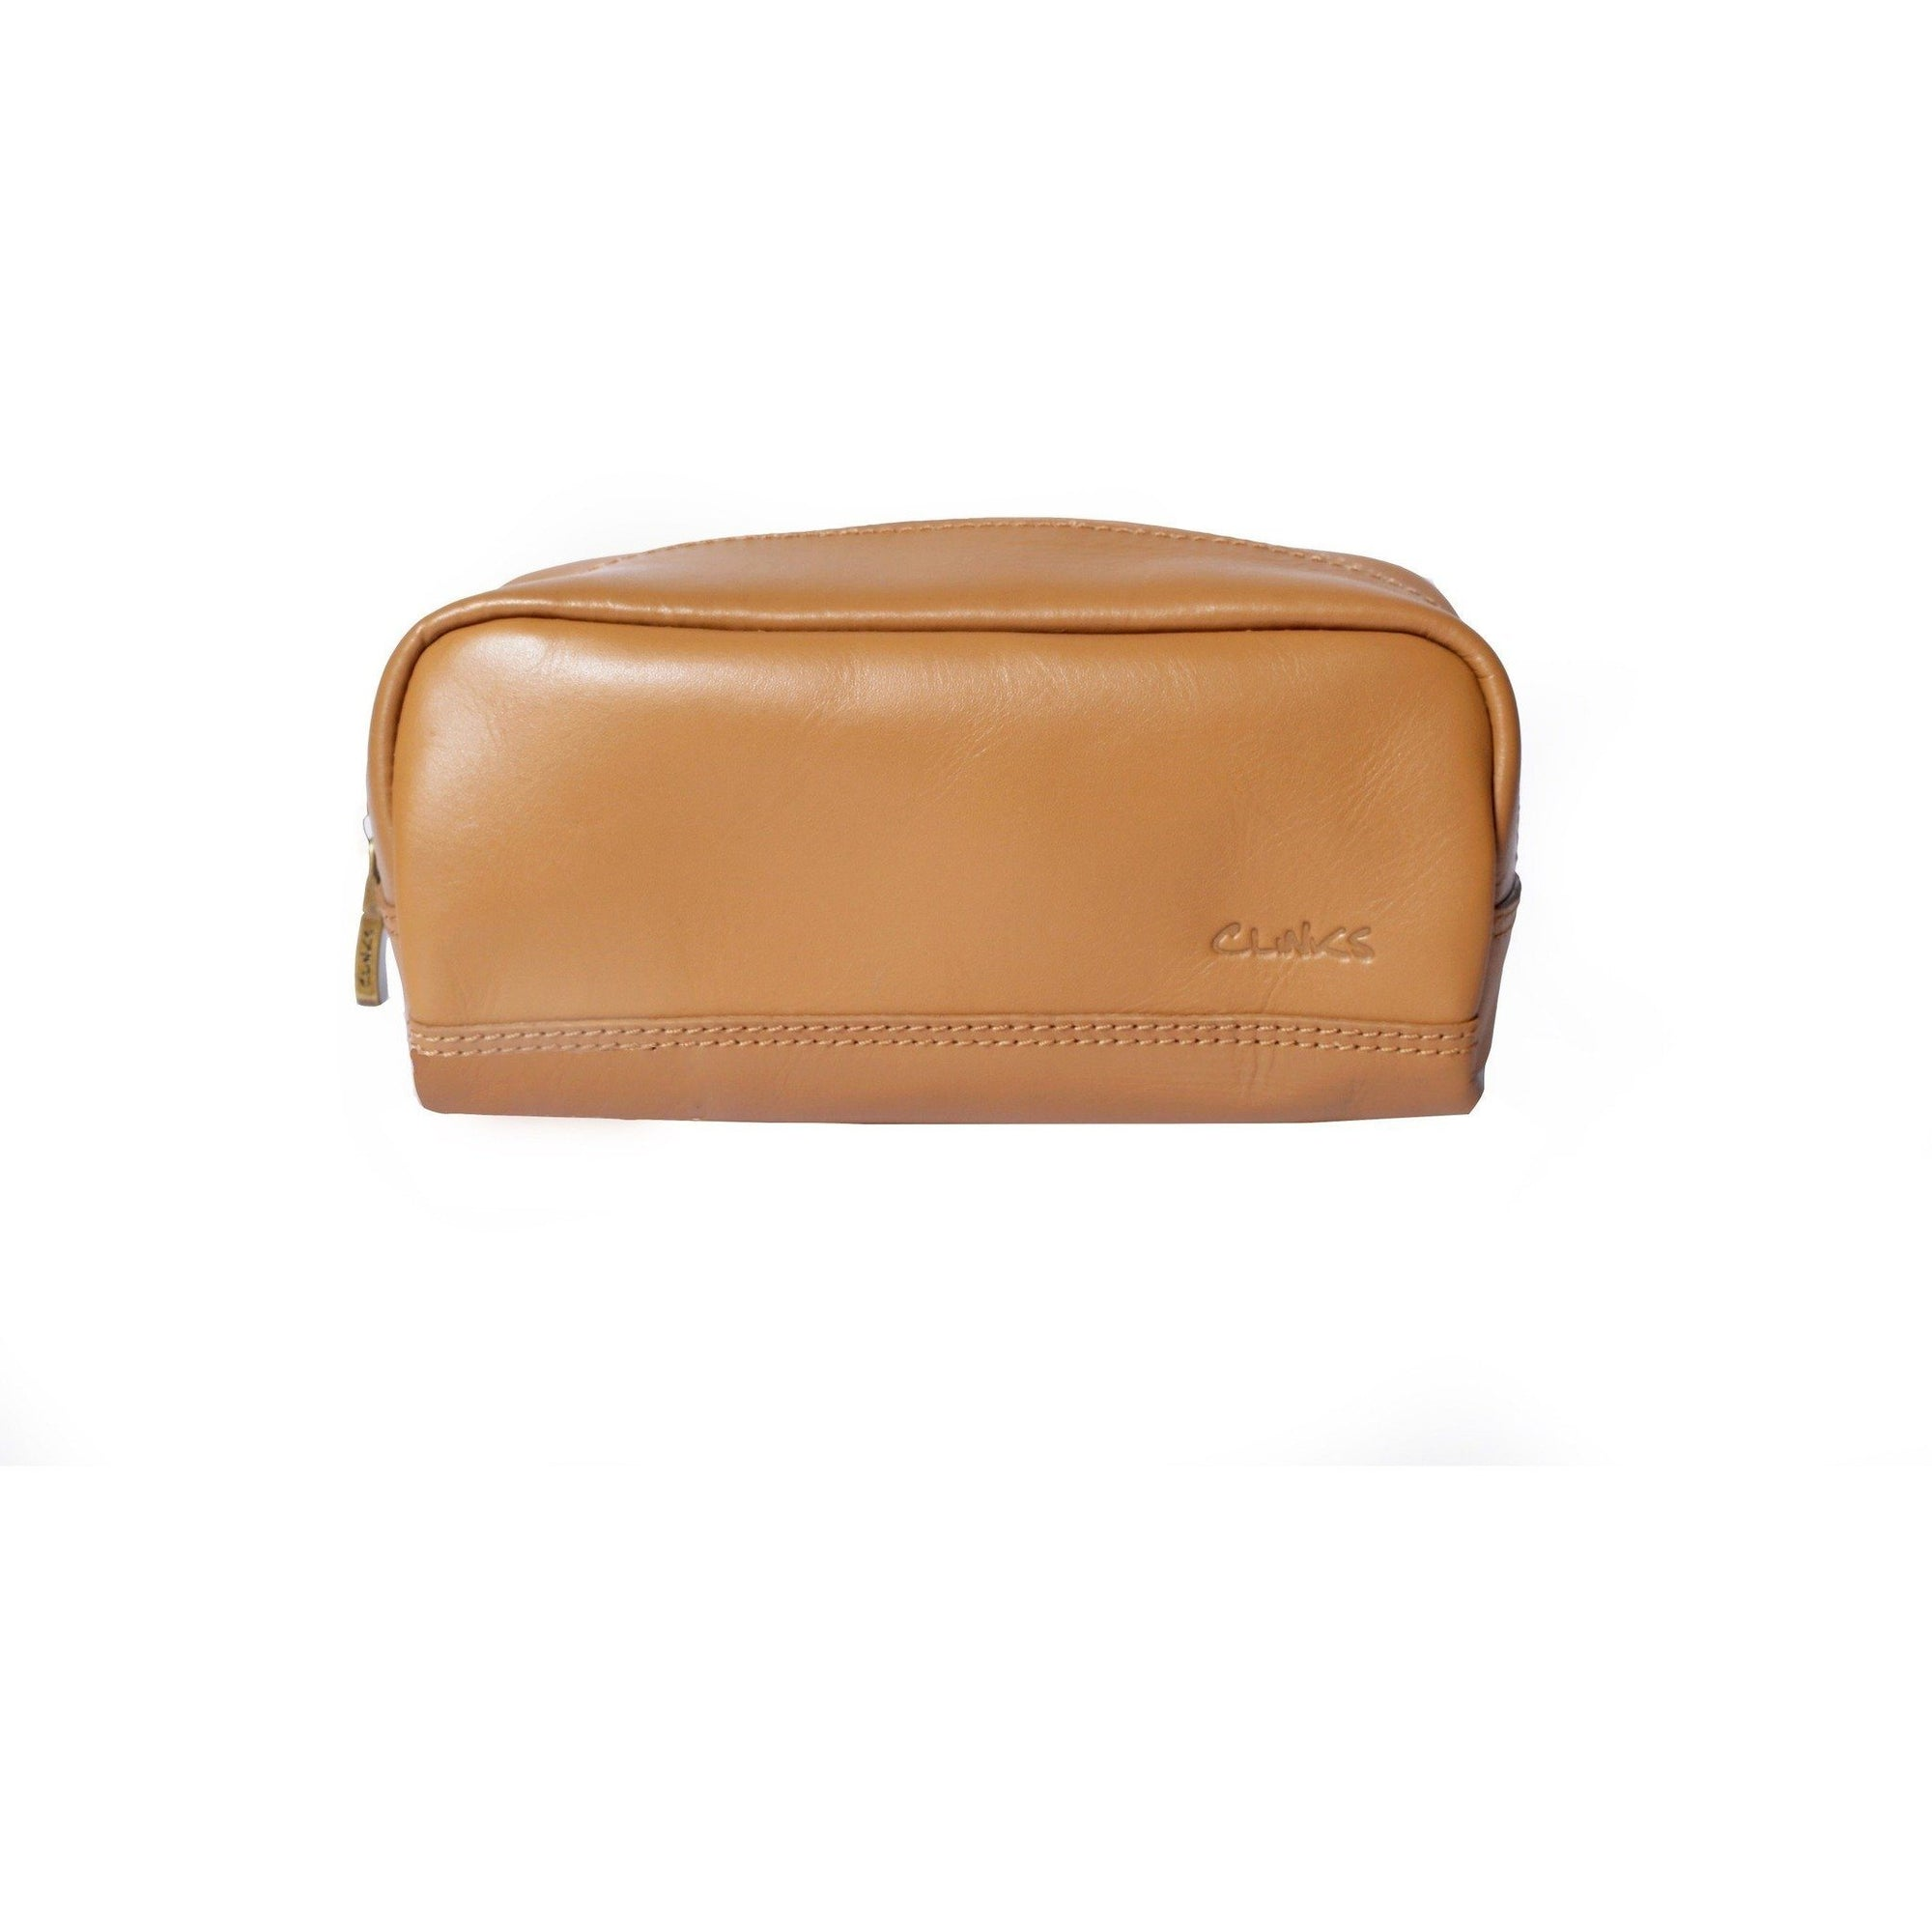 Small Leather Toiletry Bag in Tan, Leather Accessories, Cuffed.com.au, LB1010, $69.00